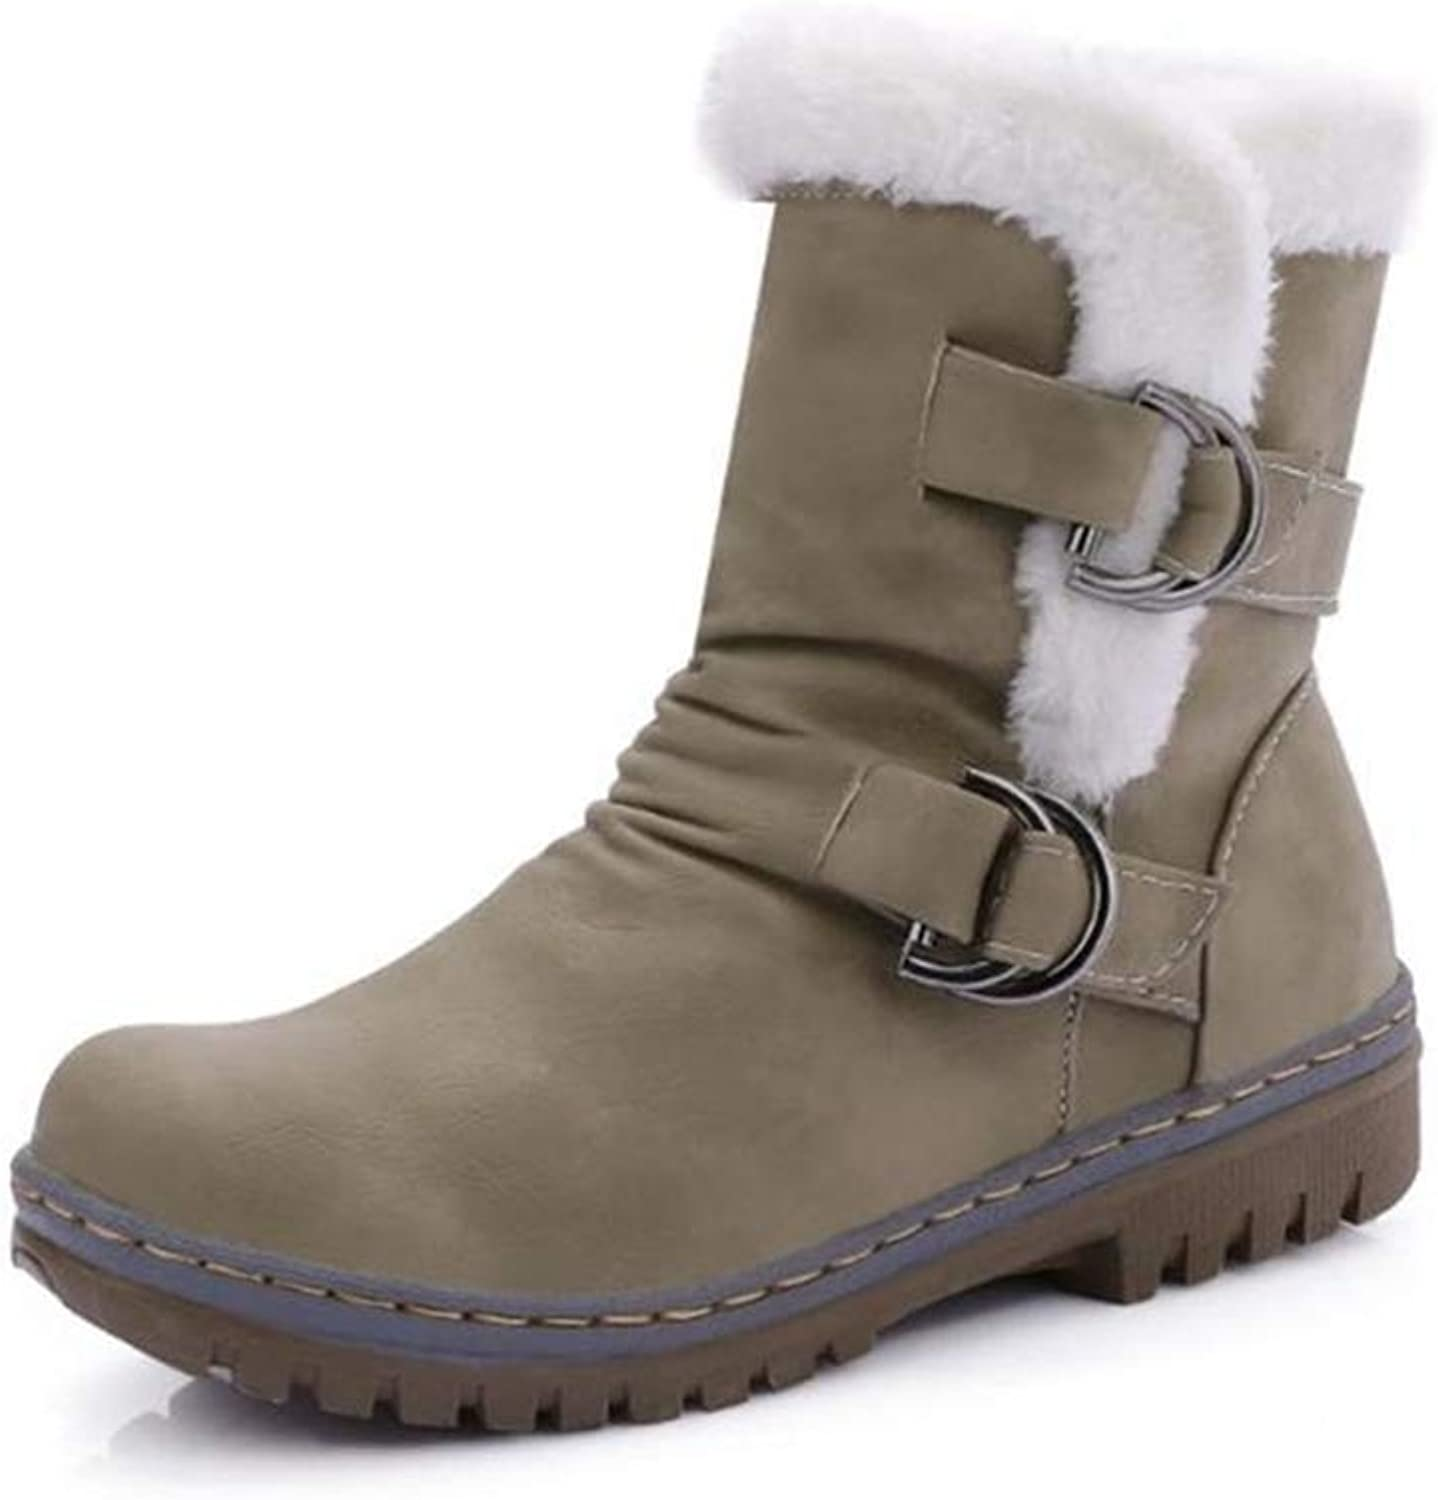 Women Belt Buckle Ankle Boots Warm Cotton Mid Calf Female Non-Slip Winter Outdoor Snow shoes